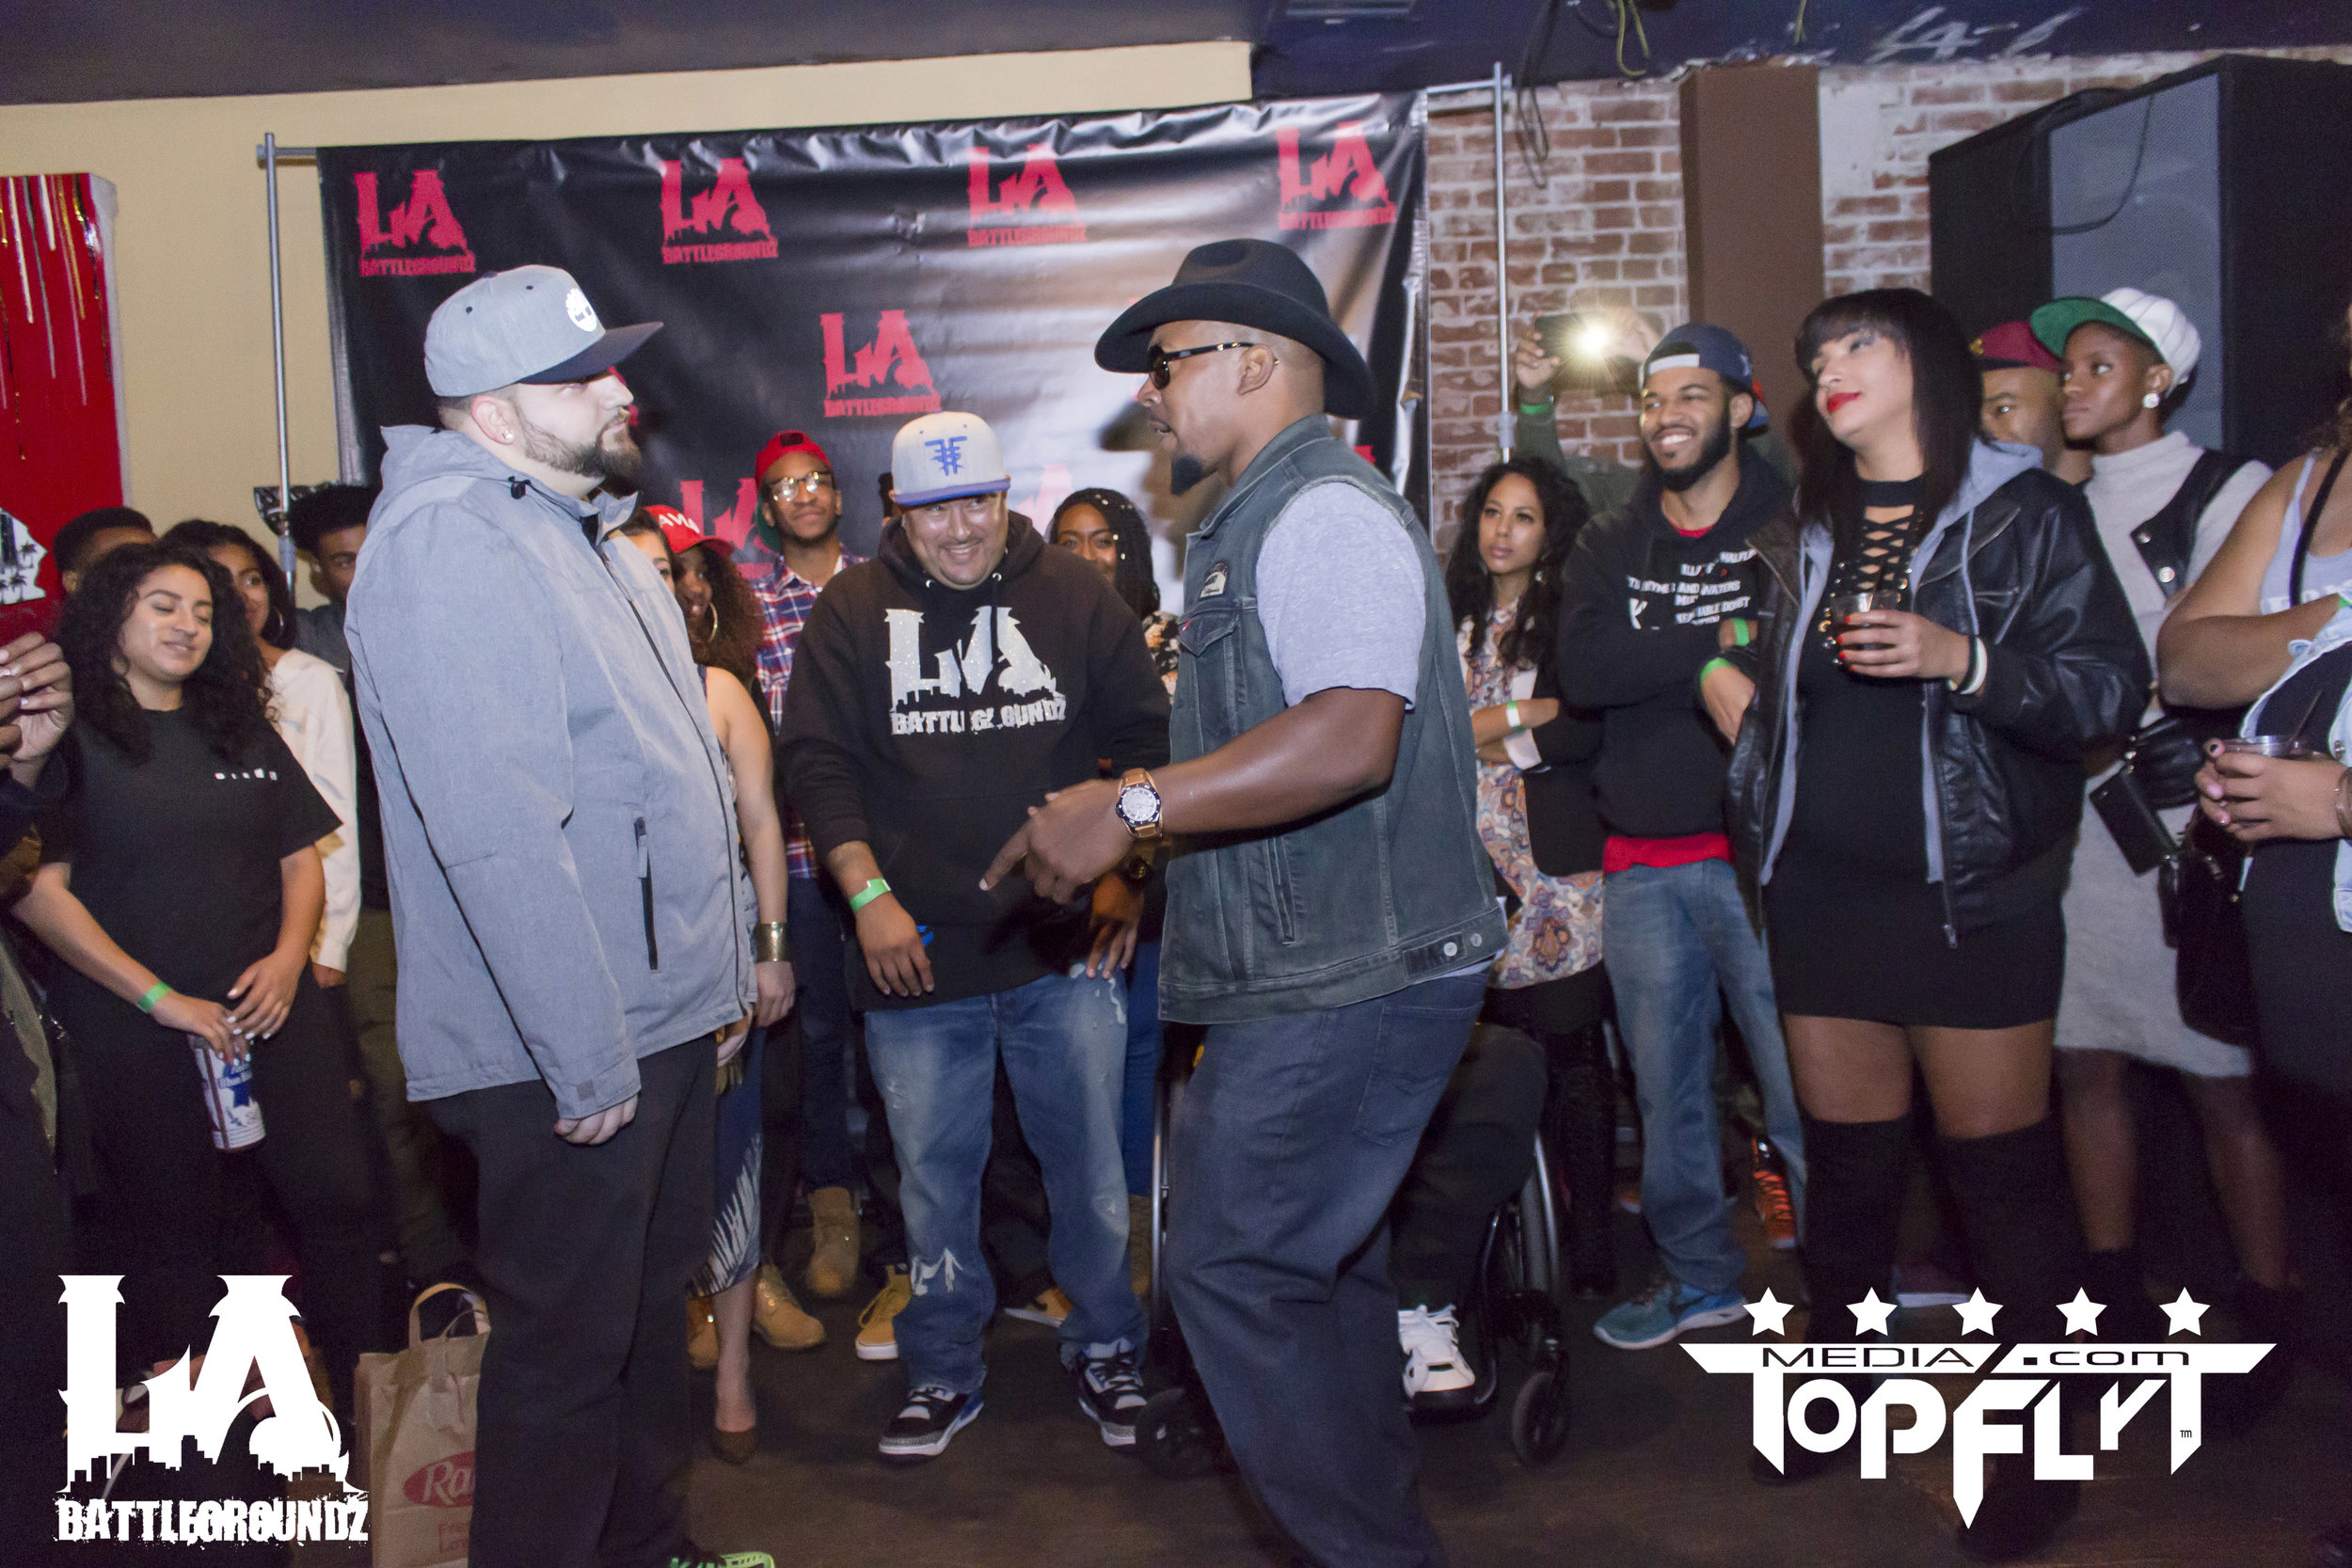 LA Battlegroundz - Decembarfest - The Christening_45.jpg